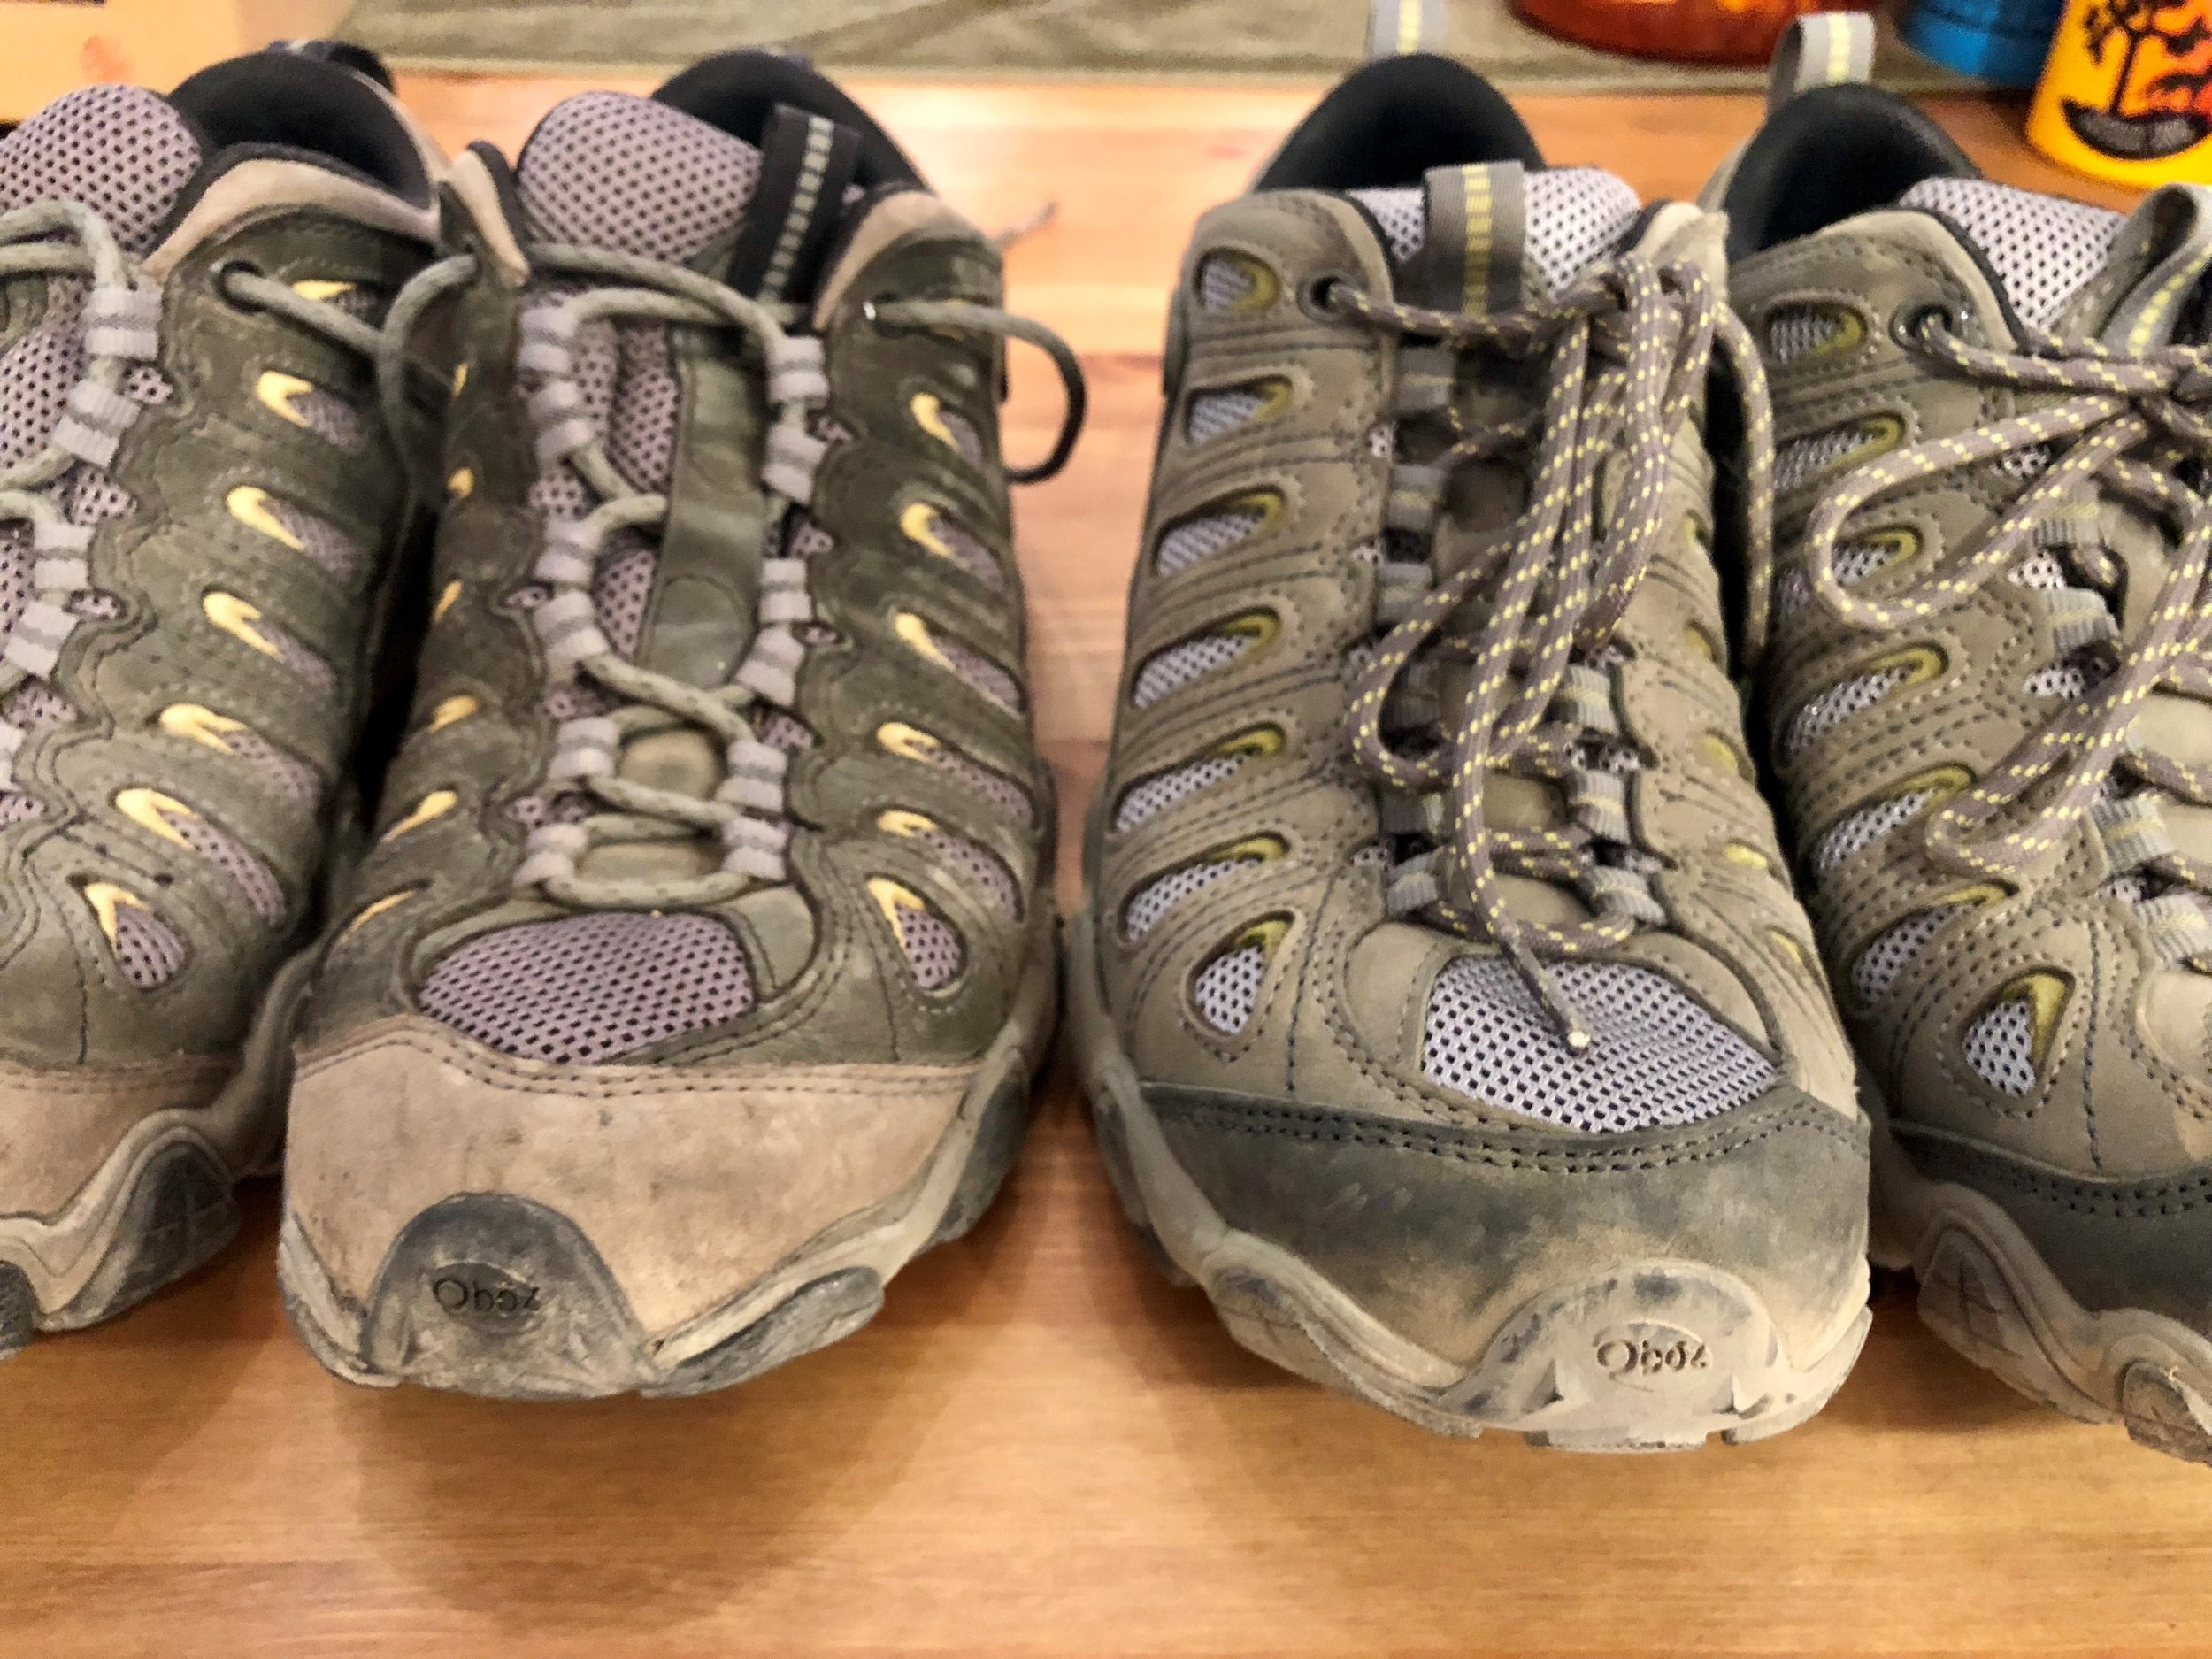 Old boots on the left, New on the right!  I didn't waste time getting the new ones dirty!